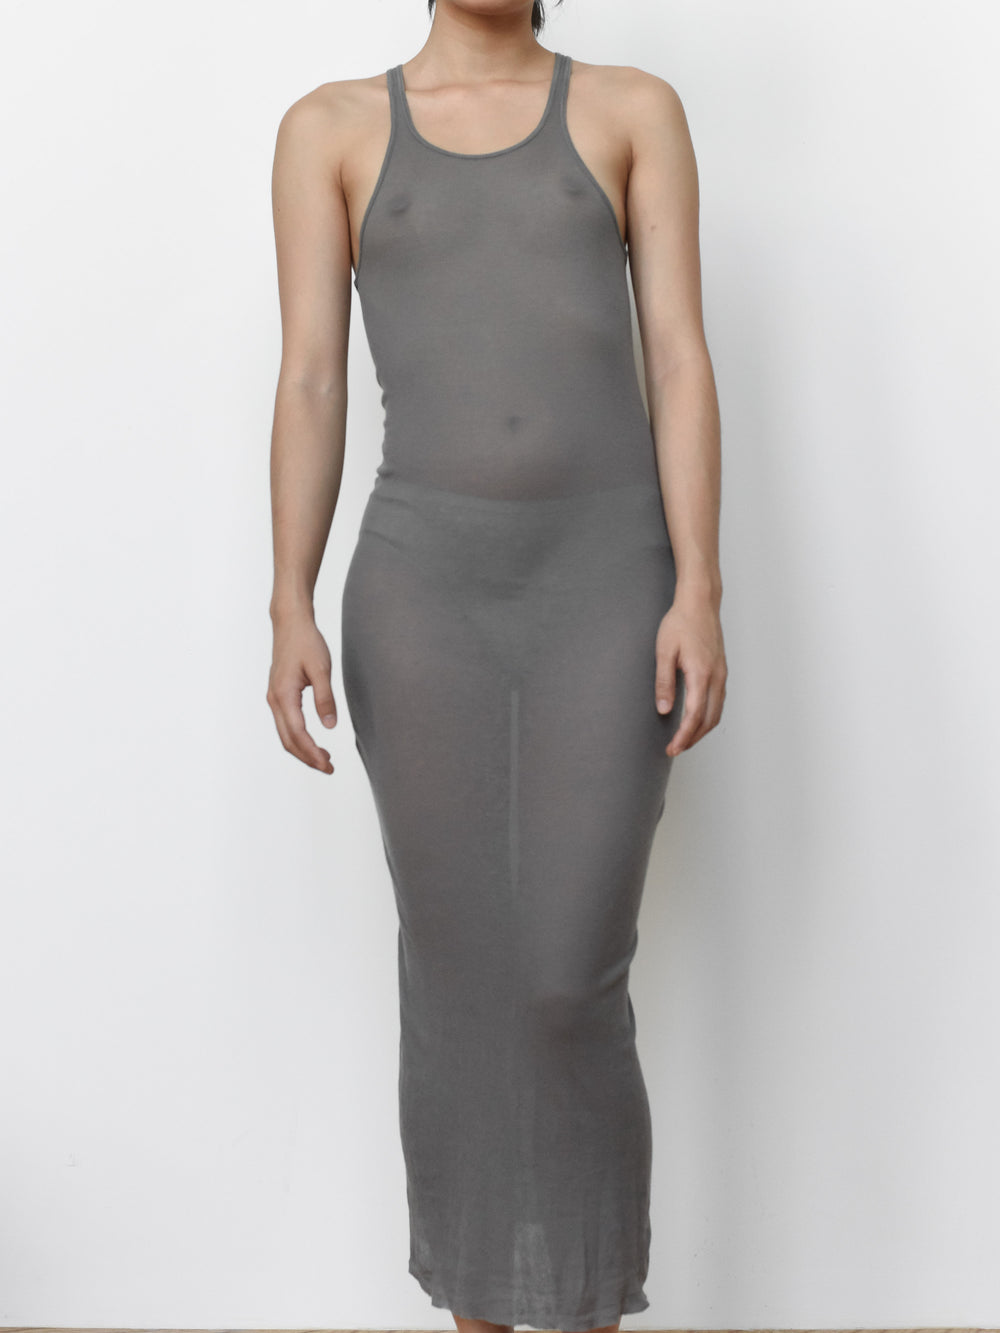 Rick Owens AW09 Tank Dress